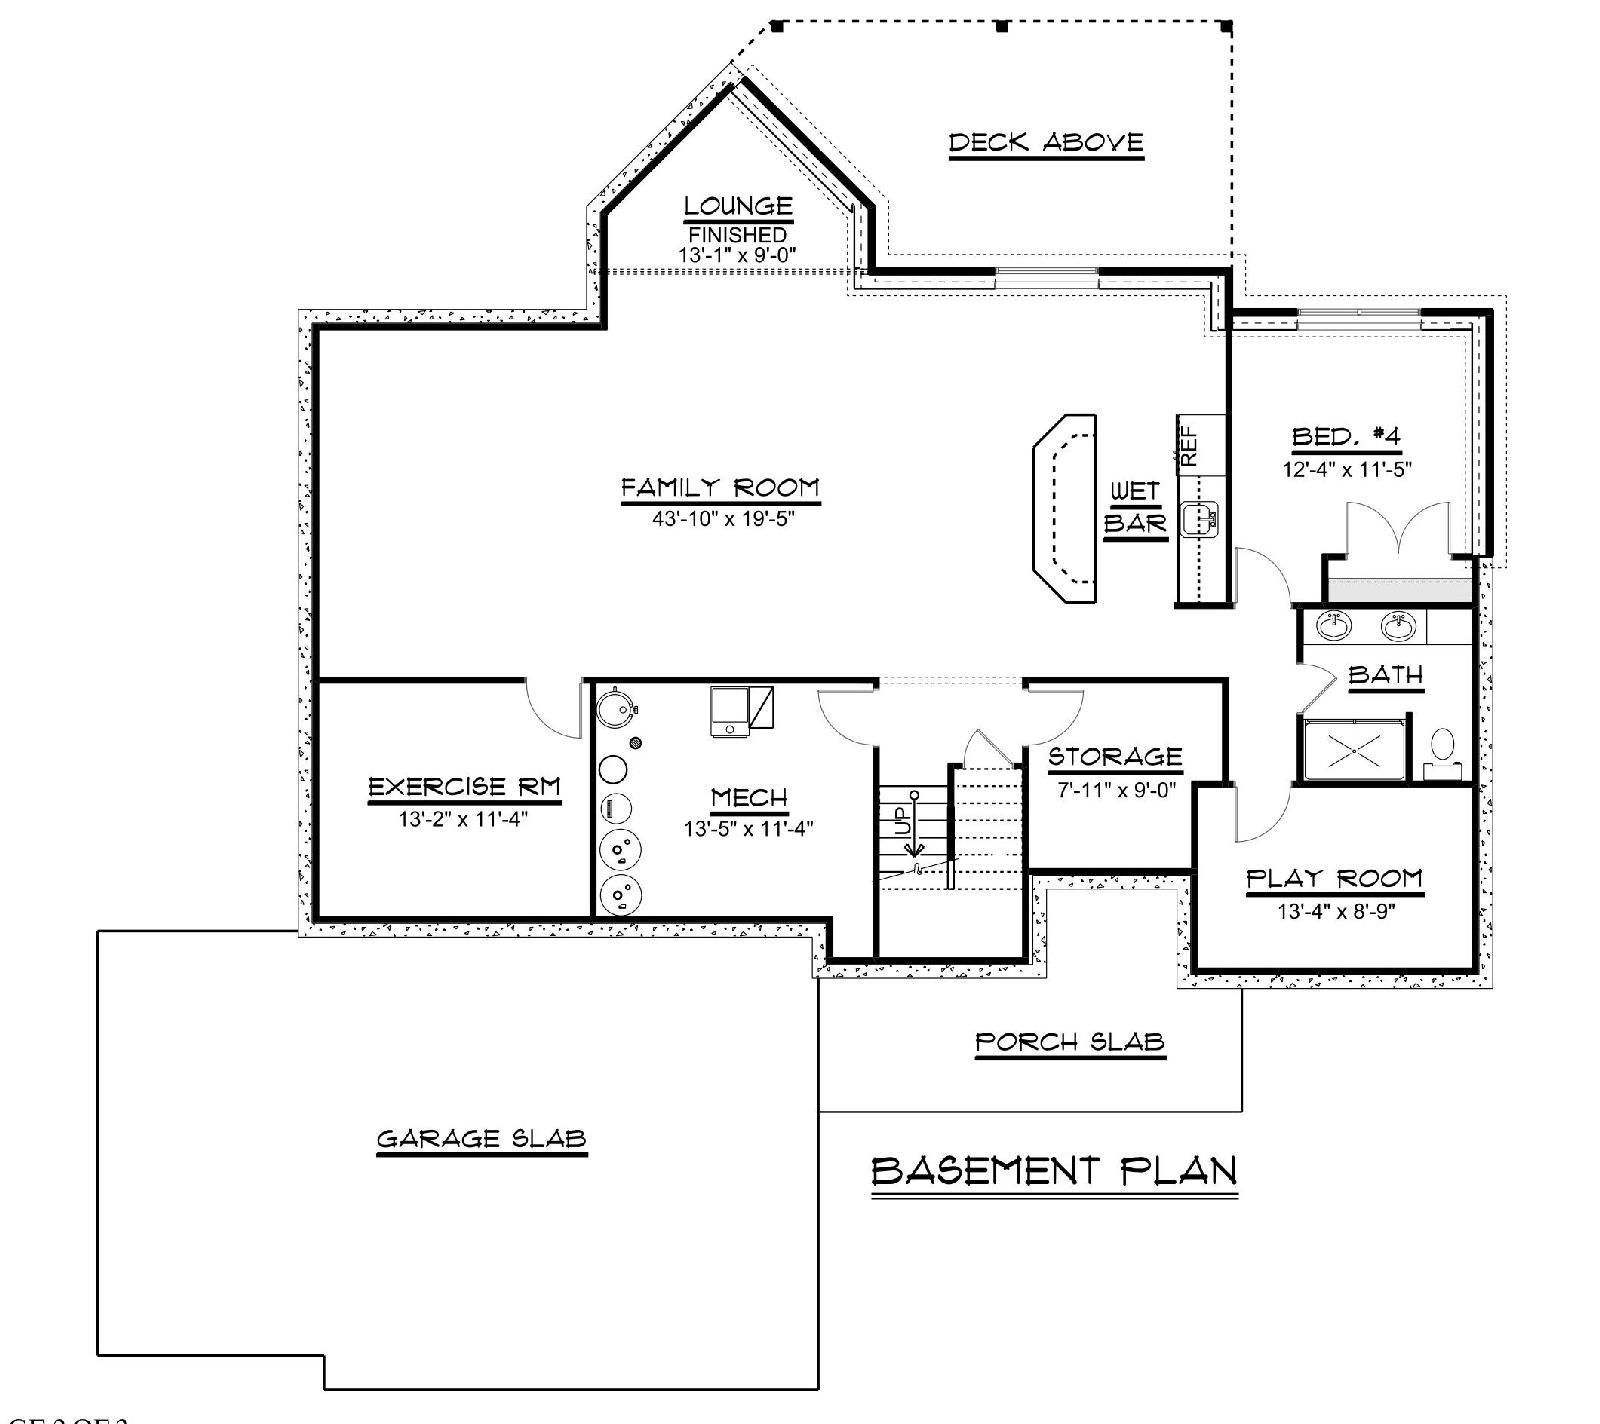 Plans By CHD - Custom Home Designs on guest suite house plans, 3 bedrooms house plans, porch house plans, best one story house plans, open one story house plans, mud room house plans, breezeway house plans, guest house house plans, award-winning rustic house plans, utility house plans, balcony house plans, workshop house plans, lounge house plans, in-law suite house plans, open floor plan house plans, kitchen house plans, carriage house plans, bunk house house plans, reverse living house plans, butler's pantry house plans,